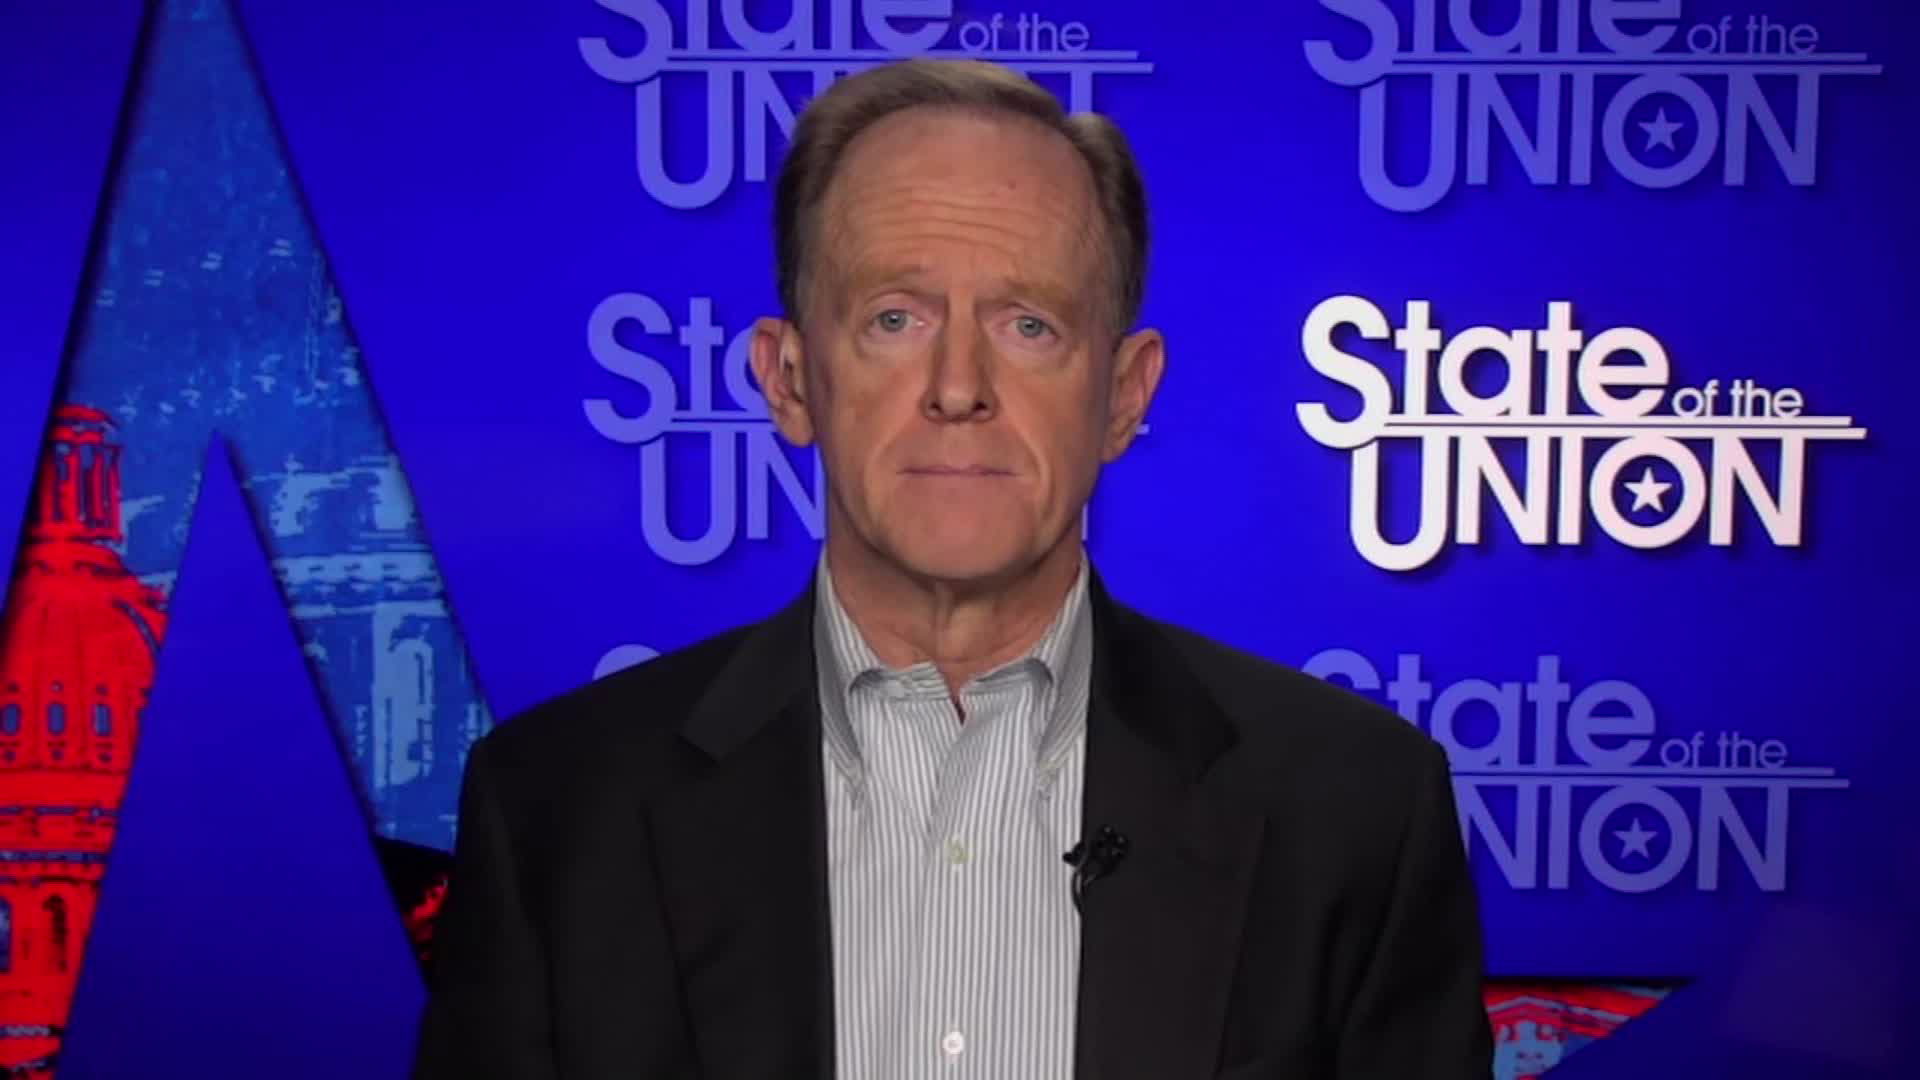 Sen. Pat Toomey, a Republican from Pennsylvania, on January 10.